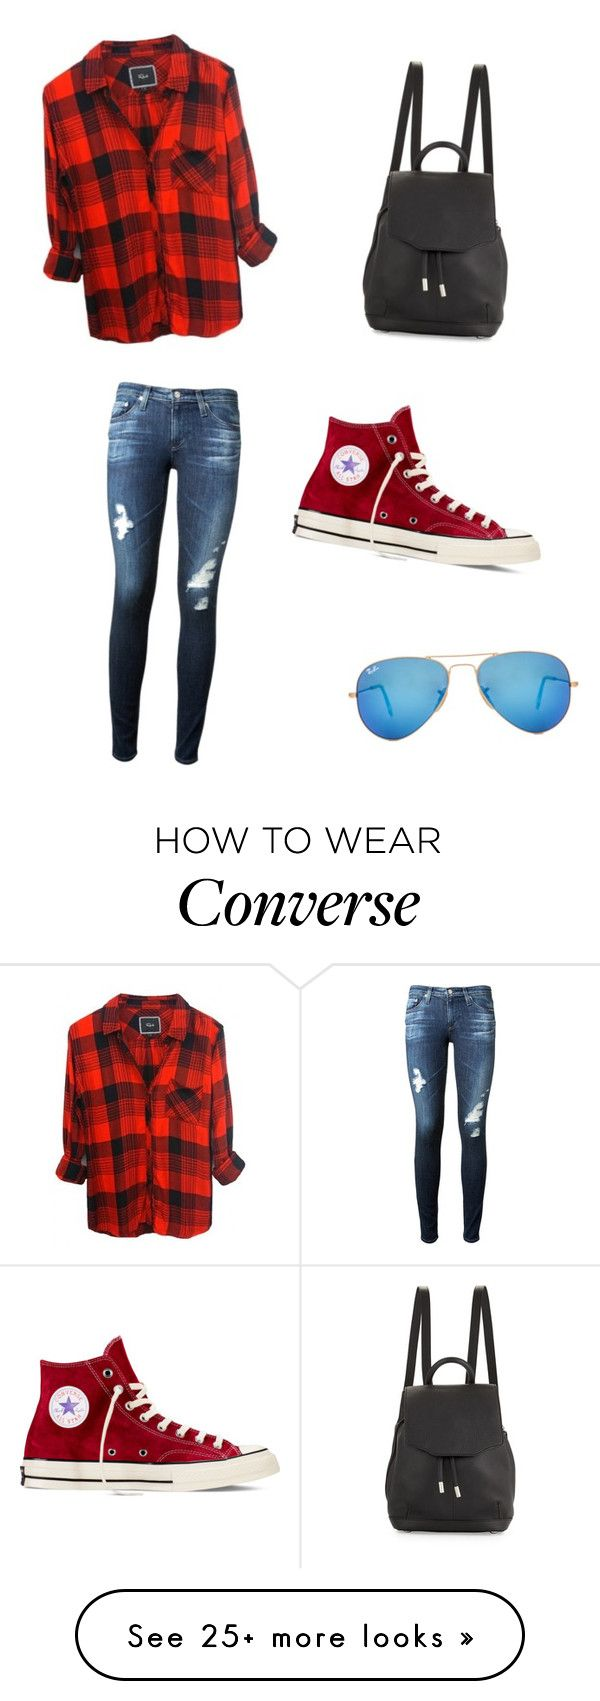 Converse At Its Best by hannah5326 on Polyvore featuring AG Adriano Goldschmied, Converse, Ray-Ban and rag  bone